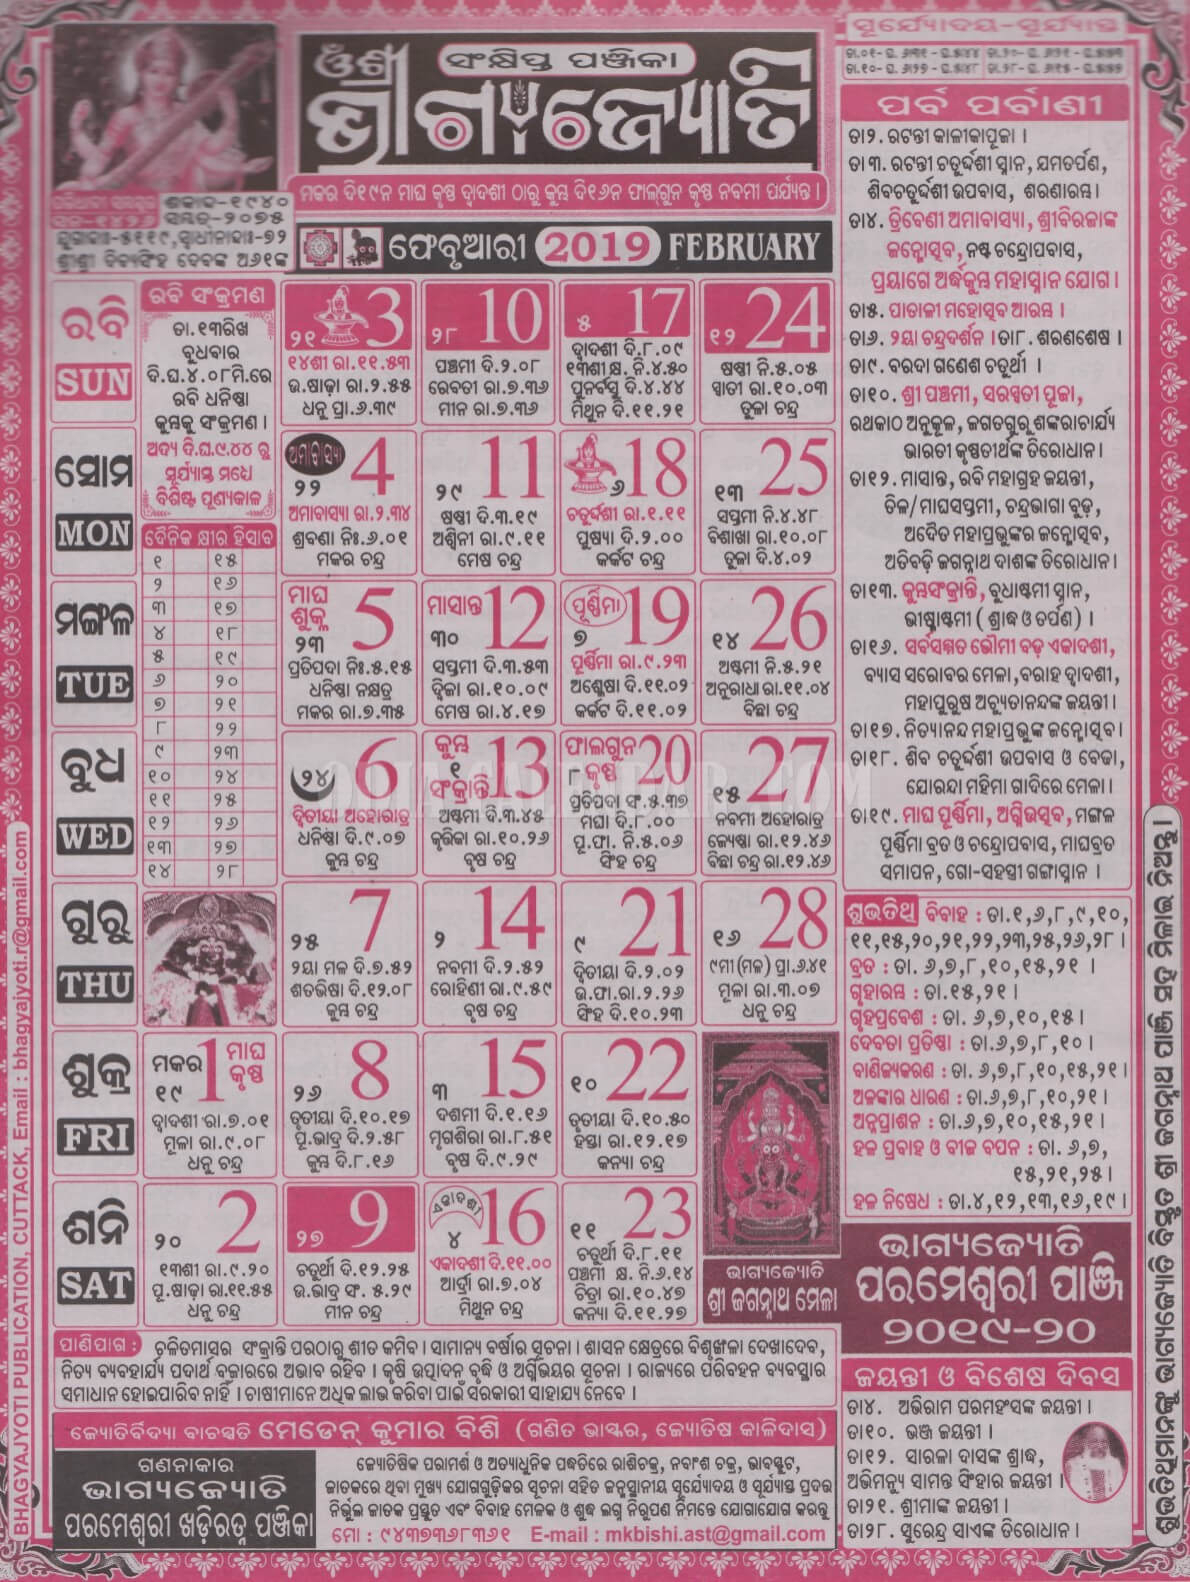 Odia Bhagyajyoti Calendar 2020 February View And Download Free intended for Odia Calendar February 2020